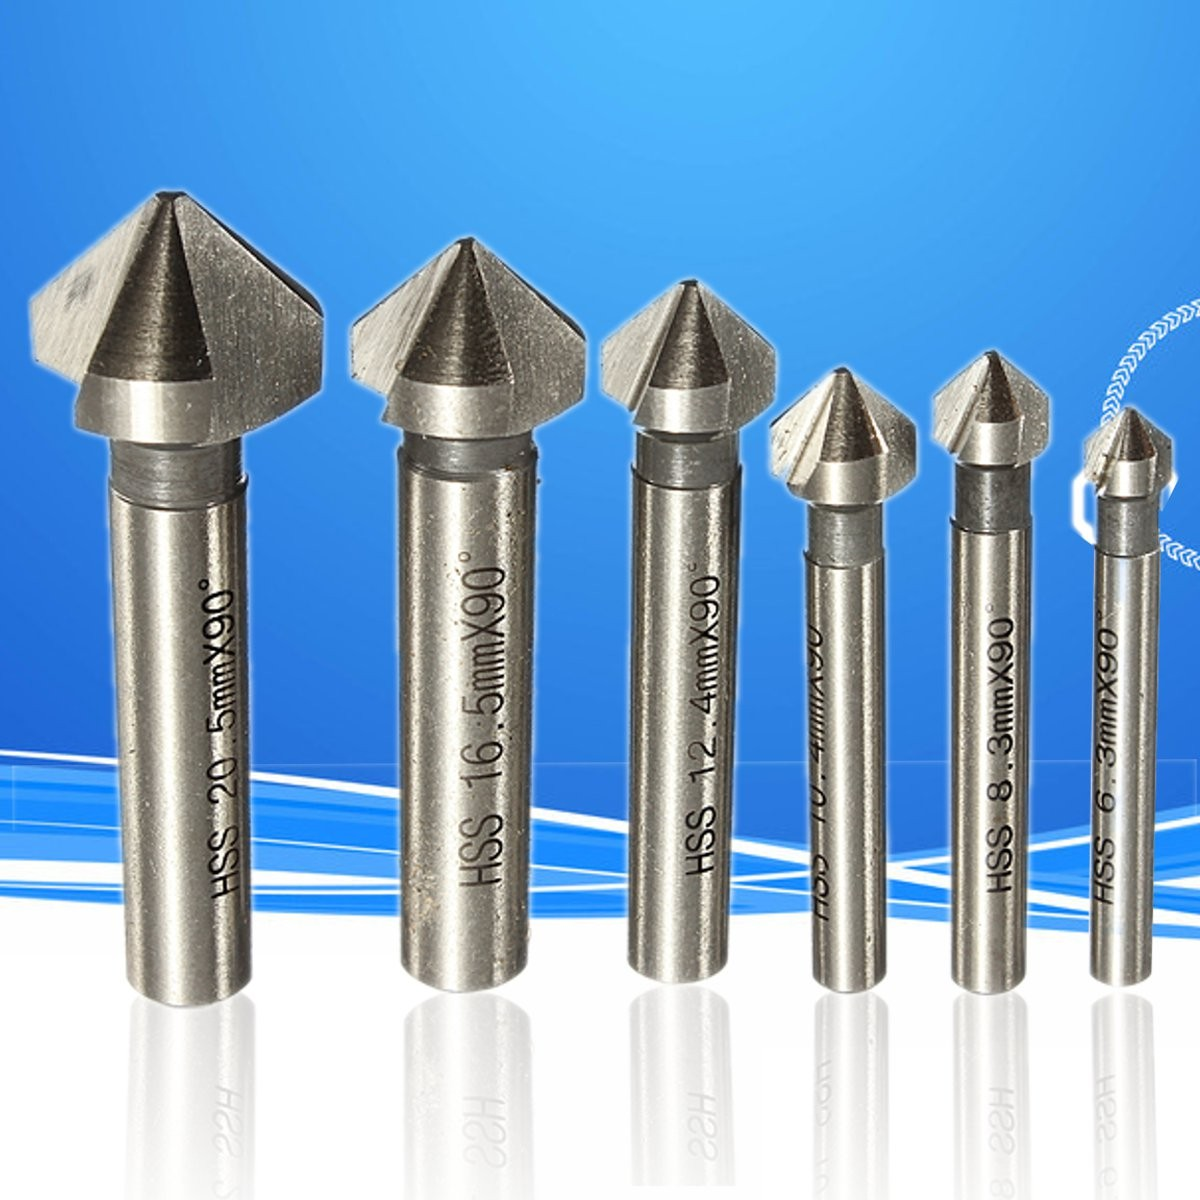 Round Shank 6pcs 3 Flute 90 Degree HSS Chamfer Chamfering Cutter End Mill Tool Countersink Drill Bit Set 6.3-20.5MM